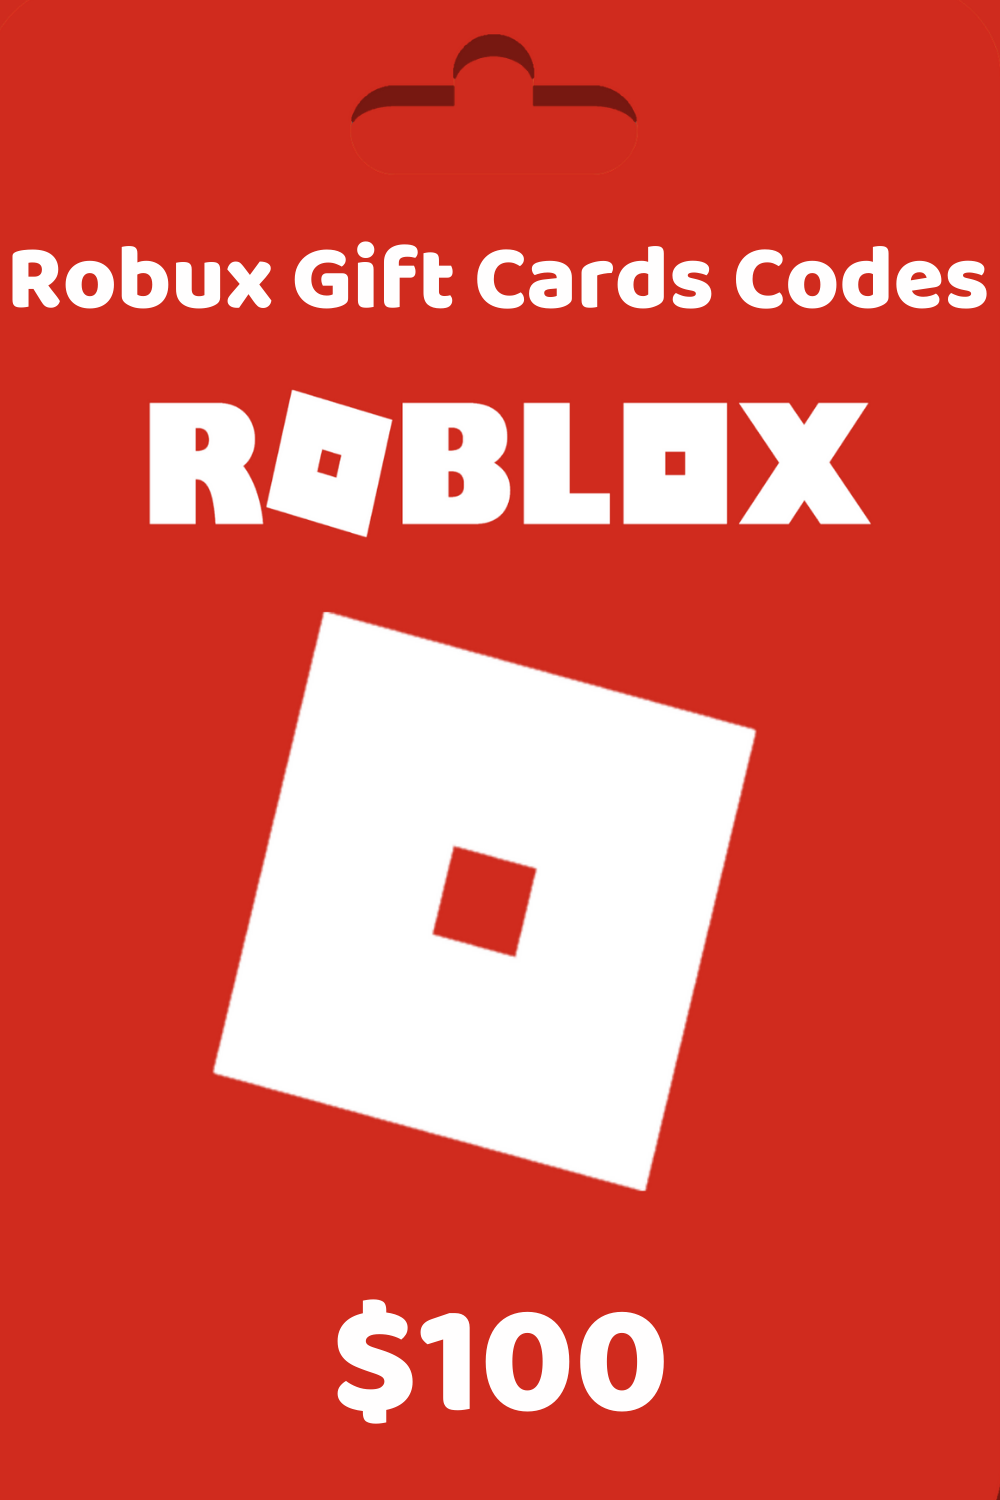 Roblox Free Robux Gift Card Roblox Robux Generator Roblox Robux Hack Roblox Free Robux Cheats Hack In 2020 Roblox Gifts Roblox Netflix Gift Card